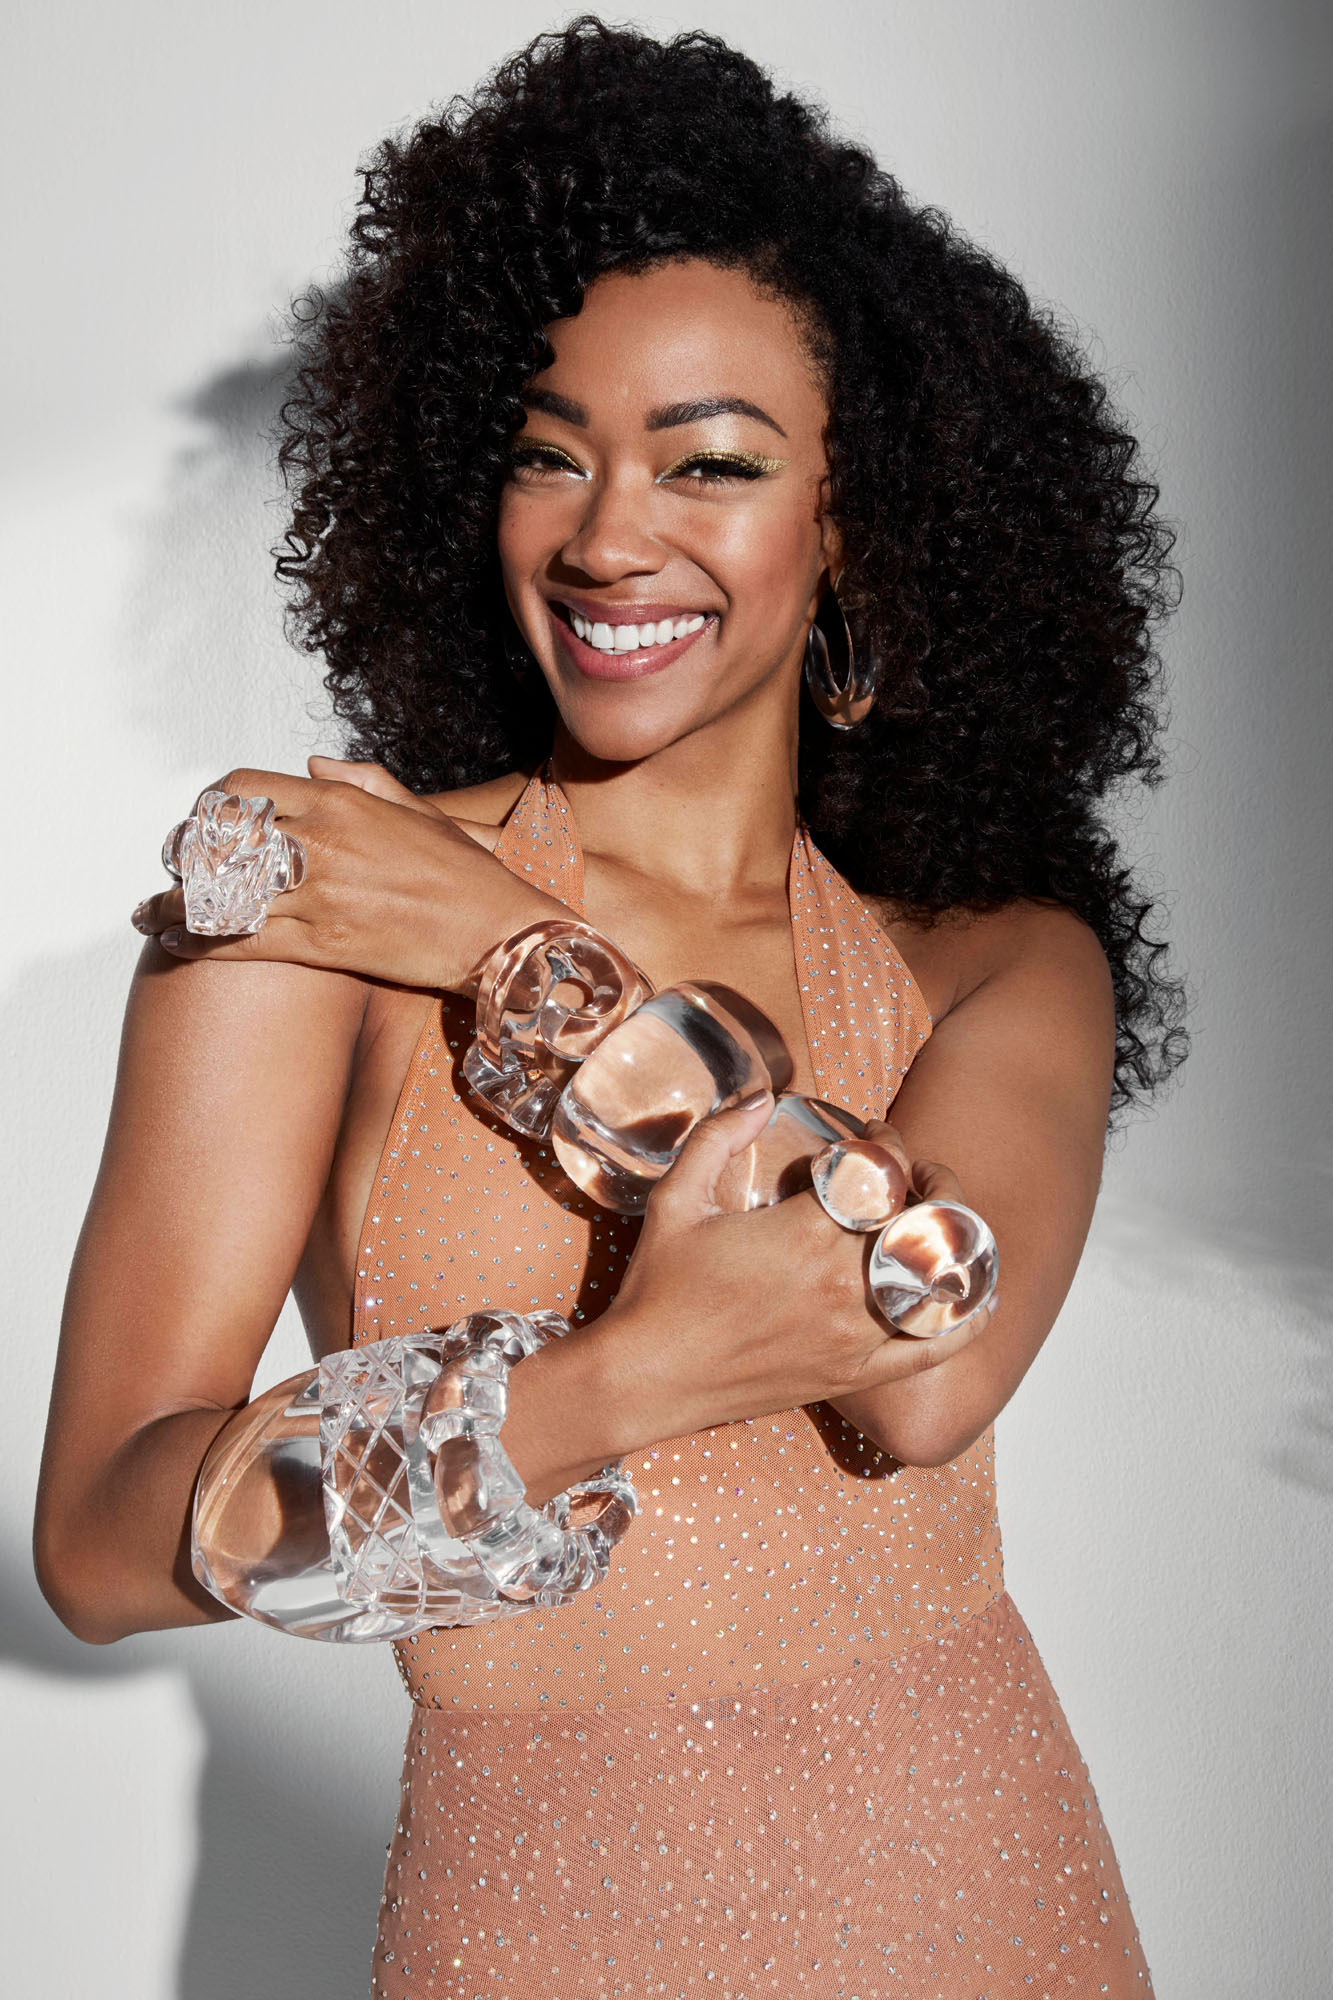 Sonequa Martin-Green Stars in CBS WATCH! Magazine Photo: Marie H Rainville / CBS 2017 © CBS Broadcasting Inc. All Rights Reserved.